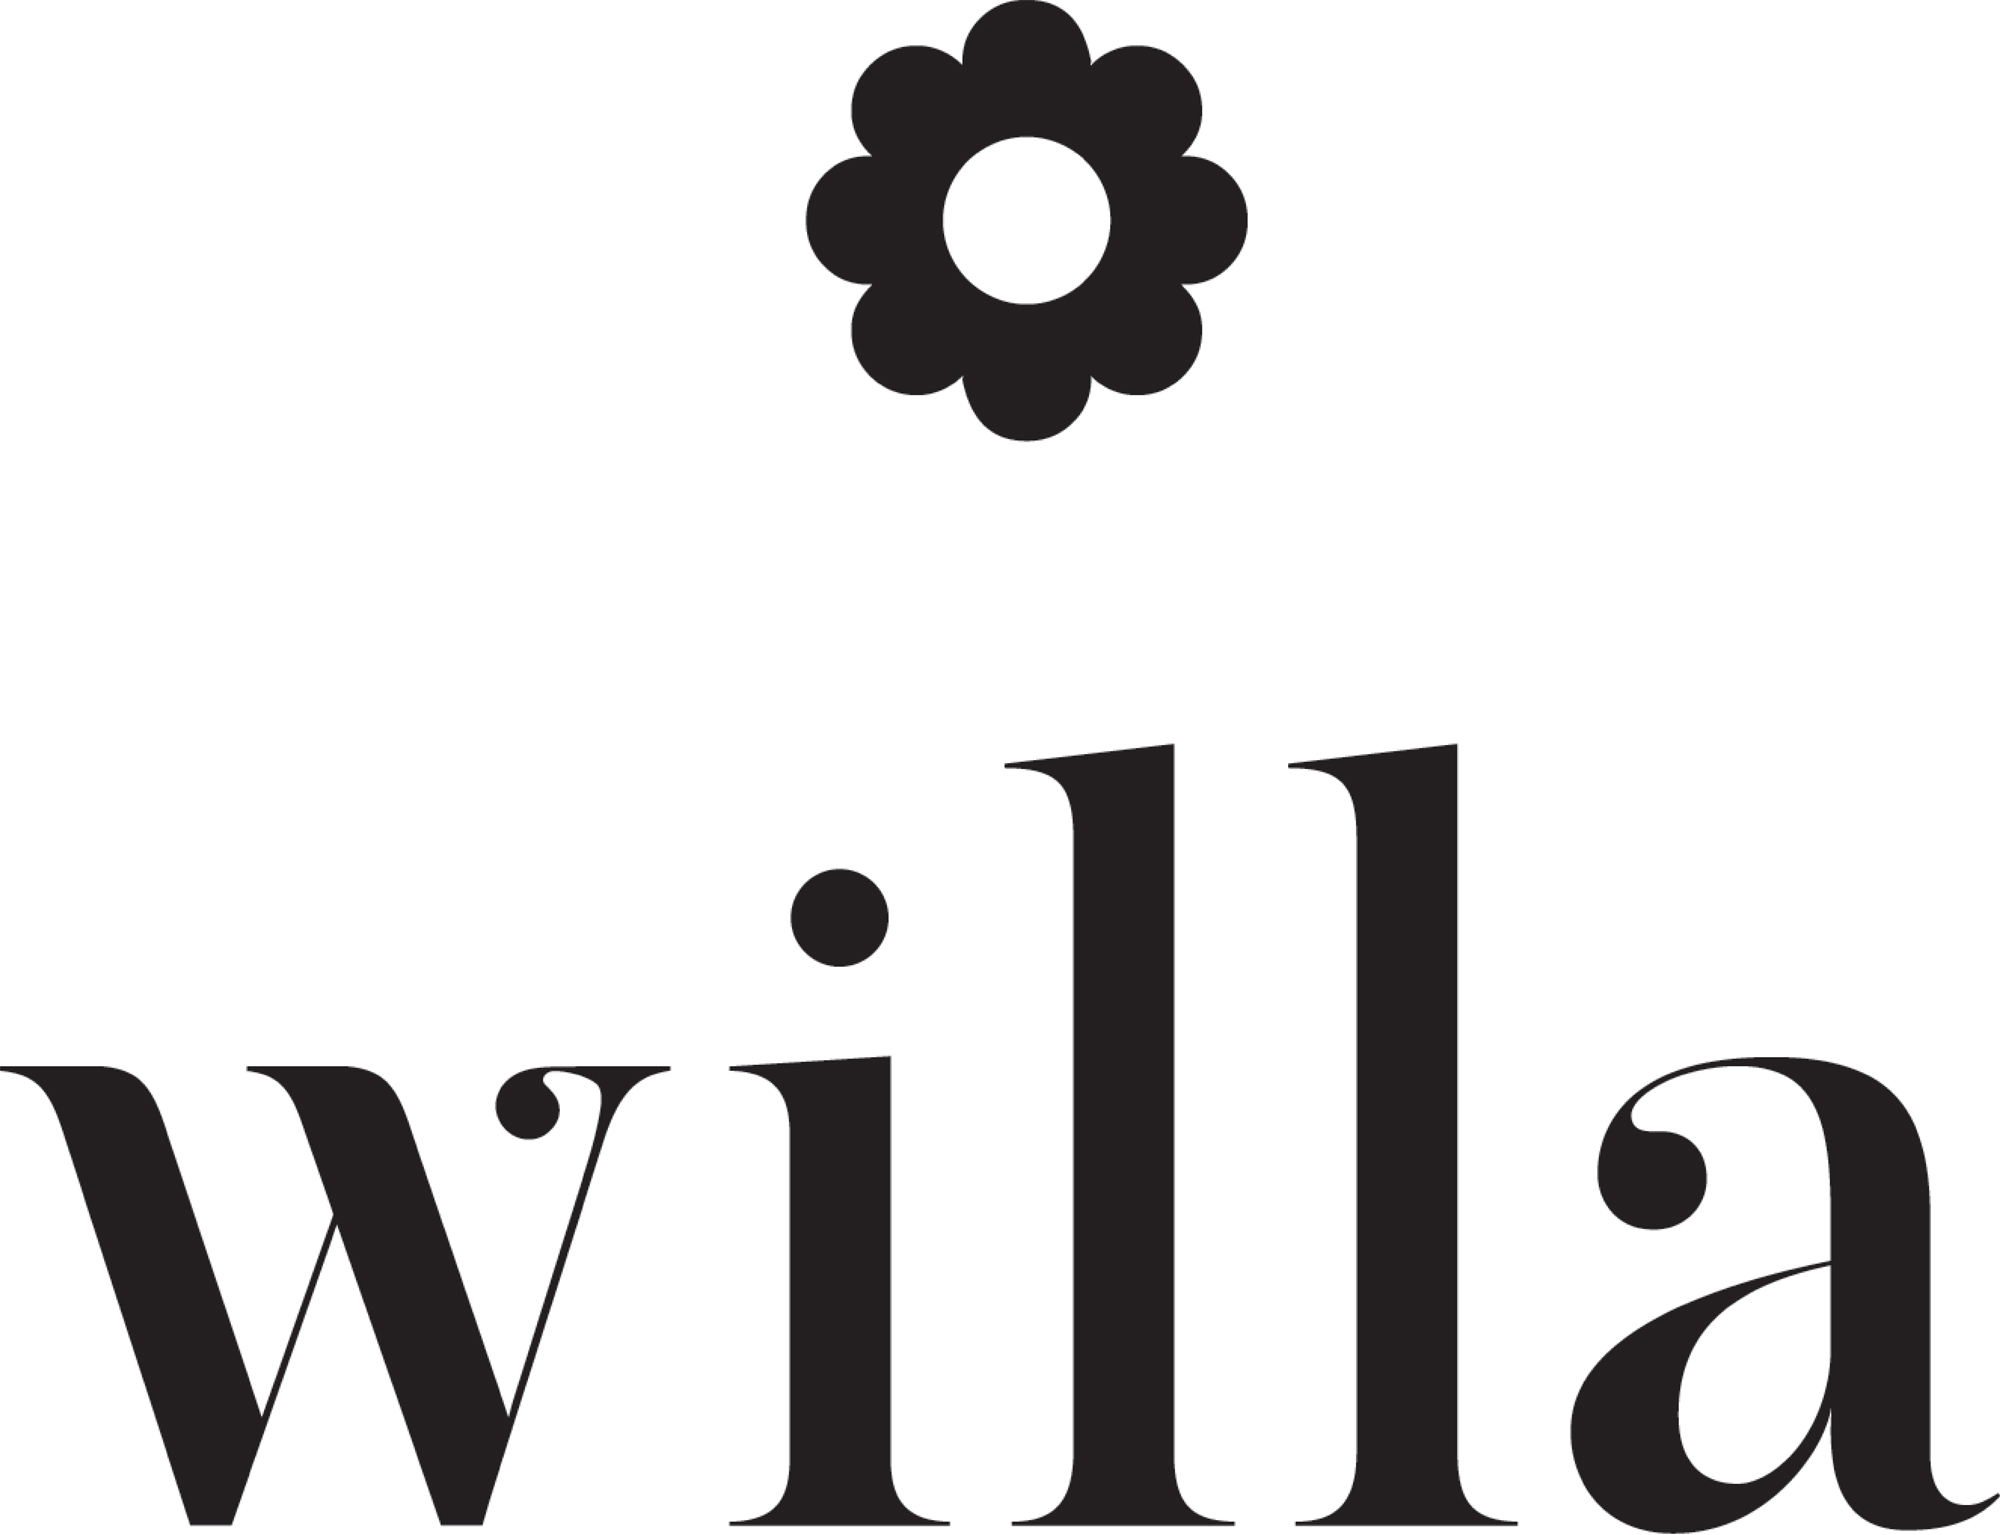 willagirl